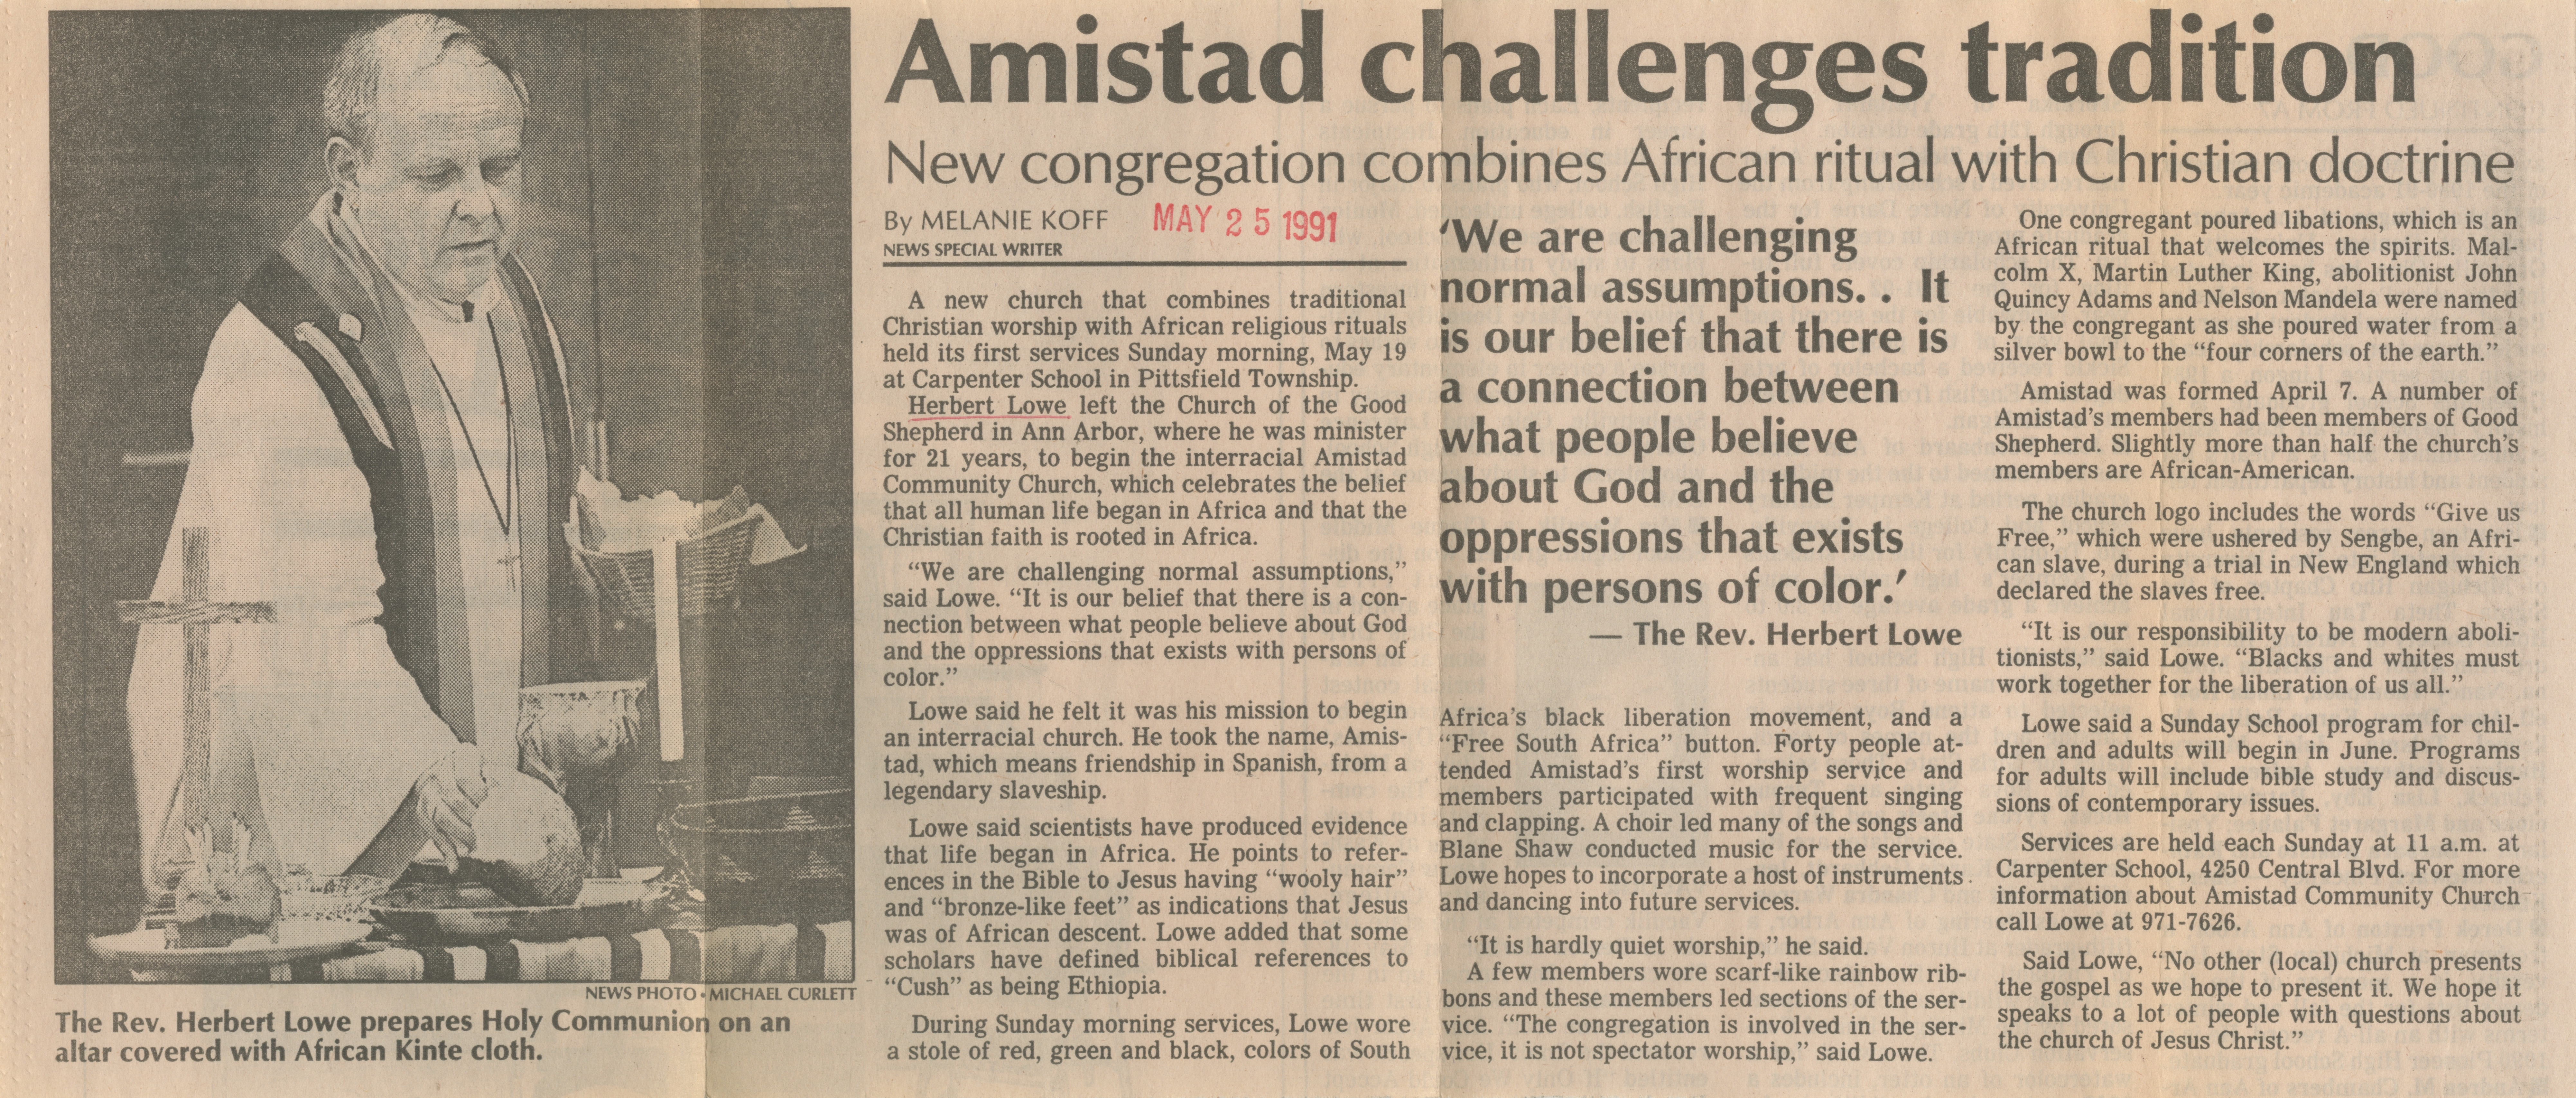 Amistad challenges tradition image